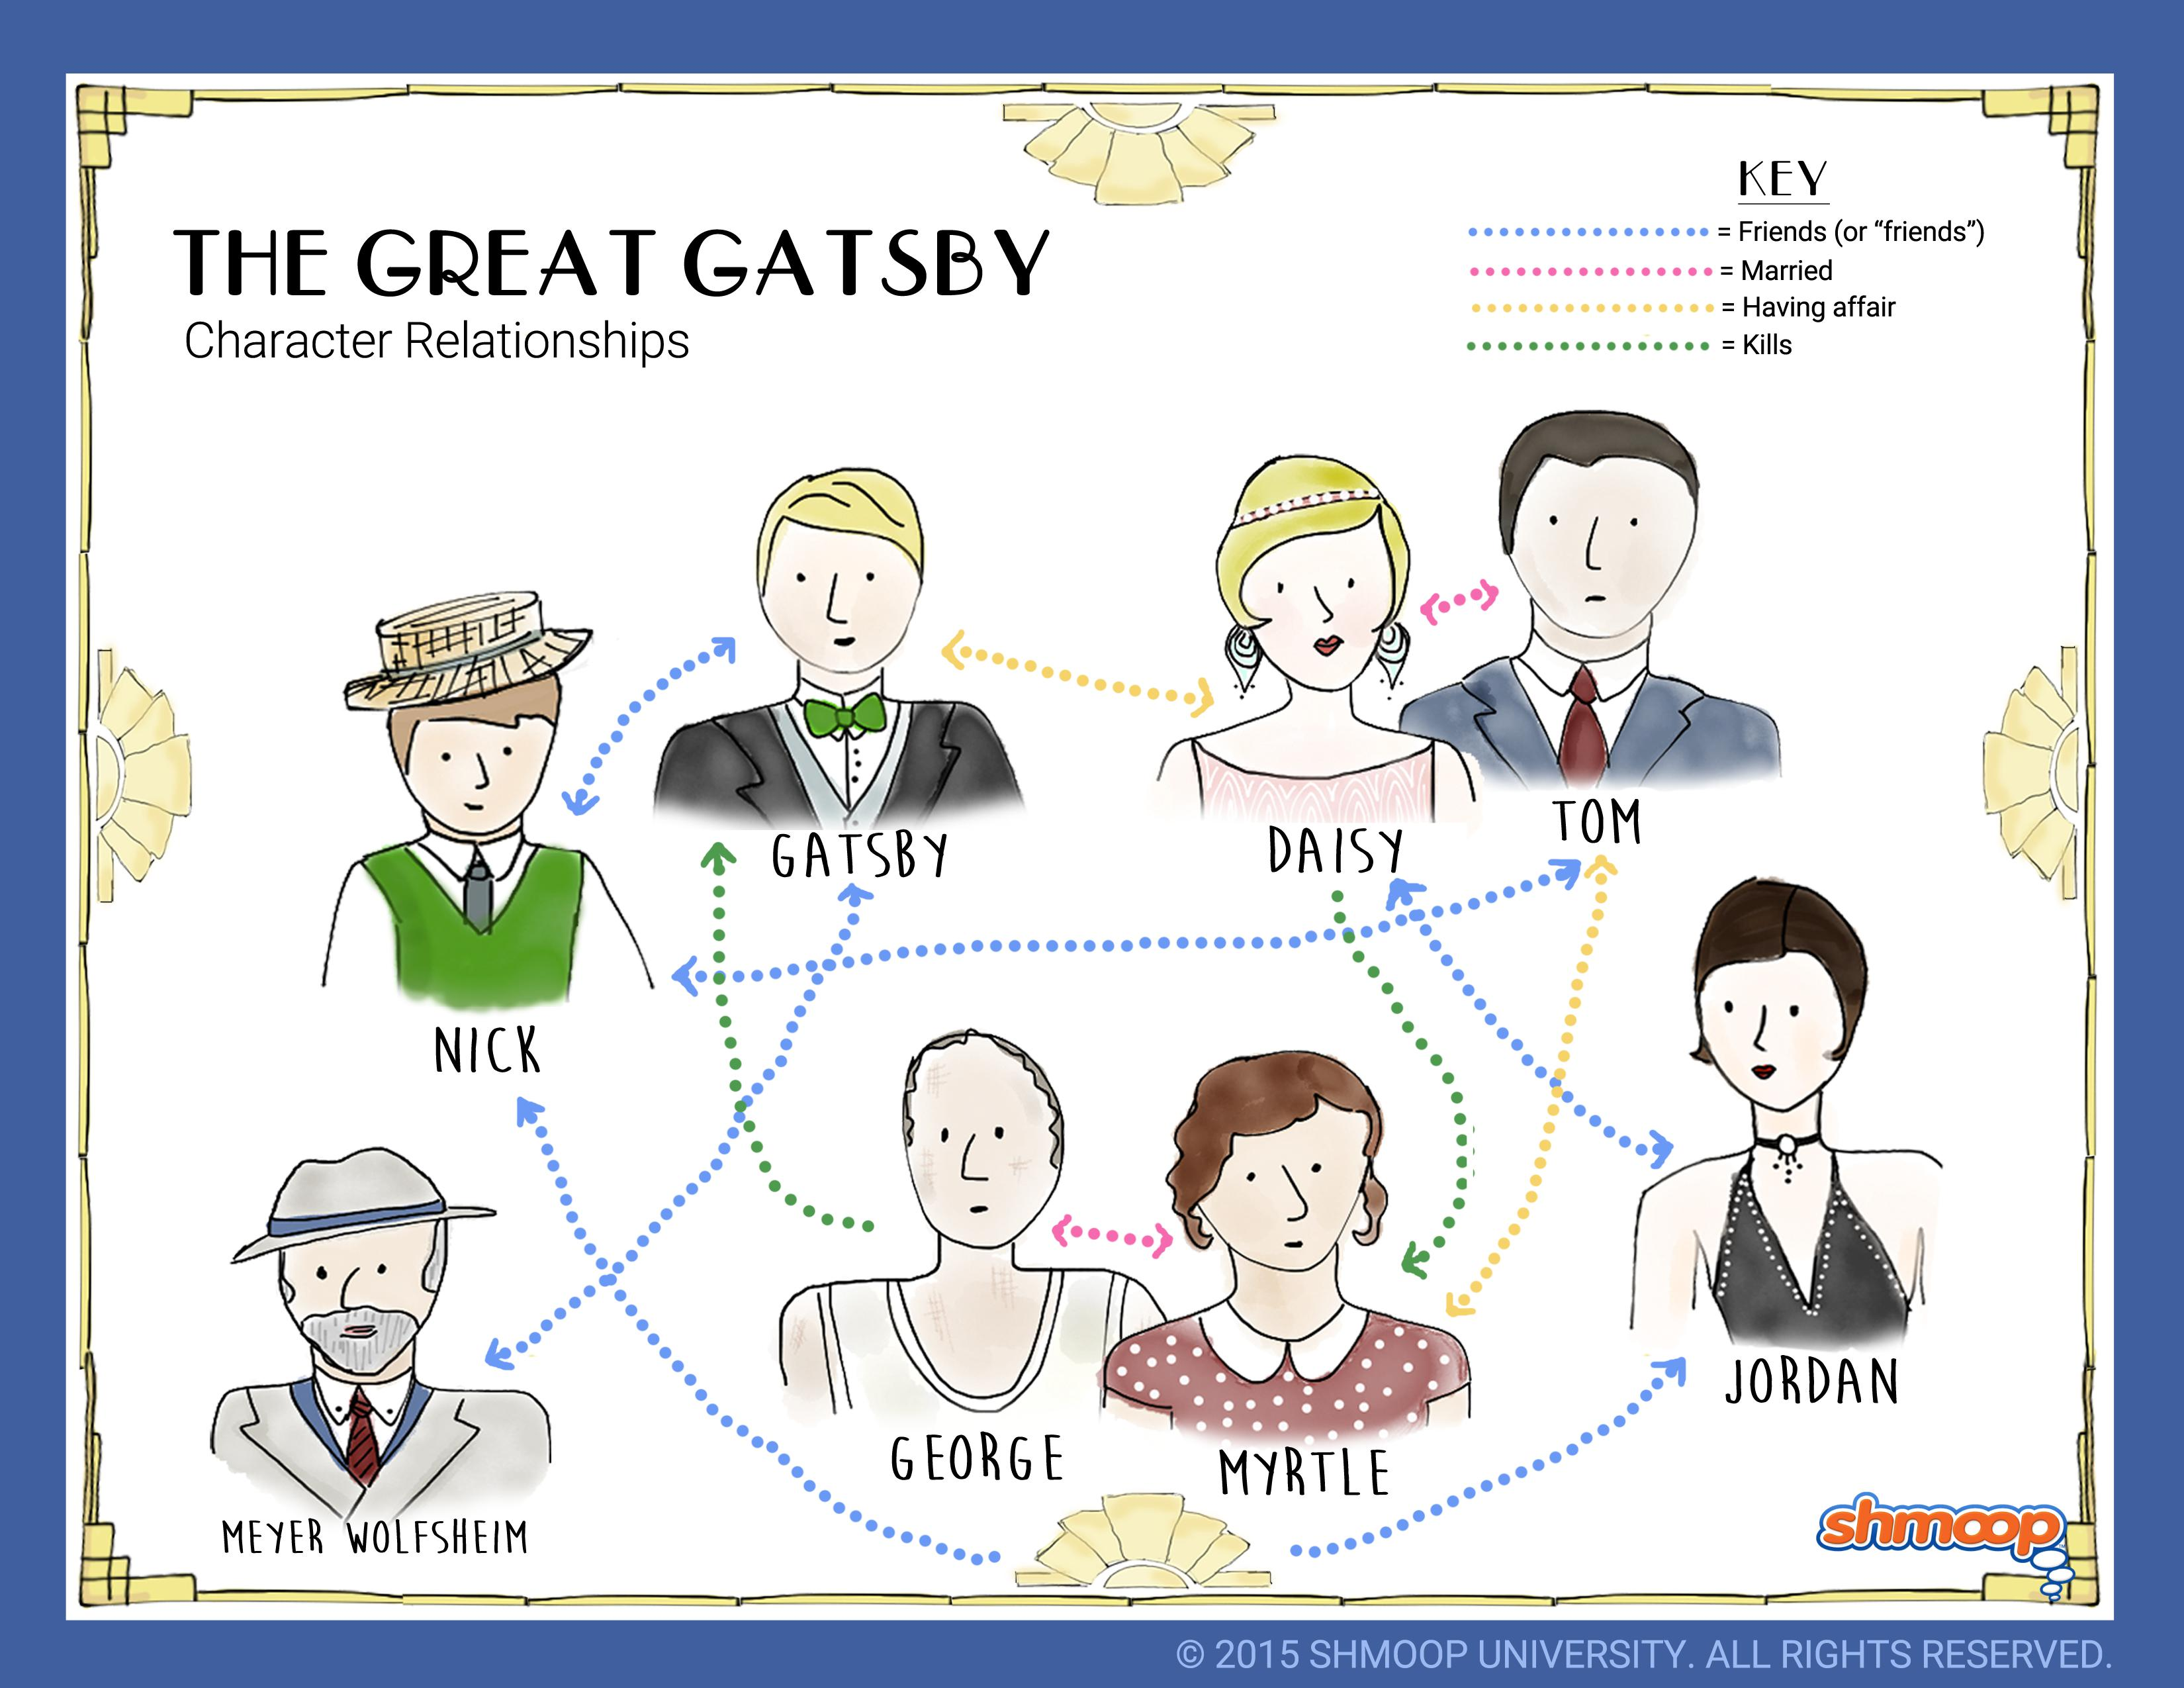 answers about the great gatsby by f The great gatsby is a 1925 novel written by american author f scott fitzgerald that follows a cast of characters living in the fictional towns of west egg and east egg on prosperous long island in the.